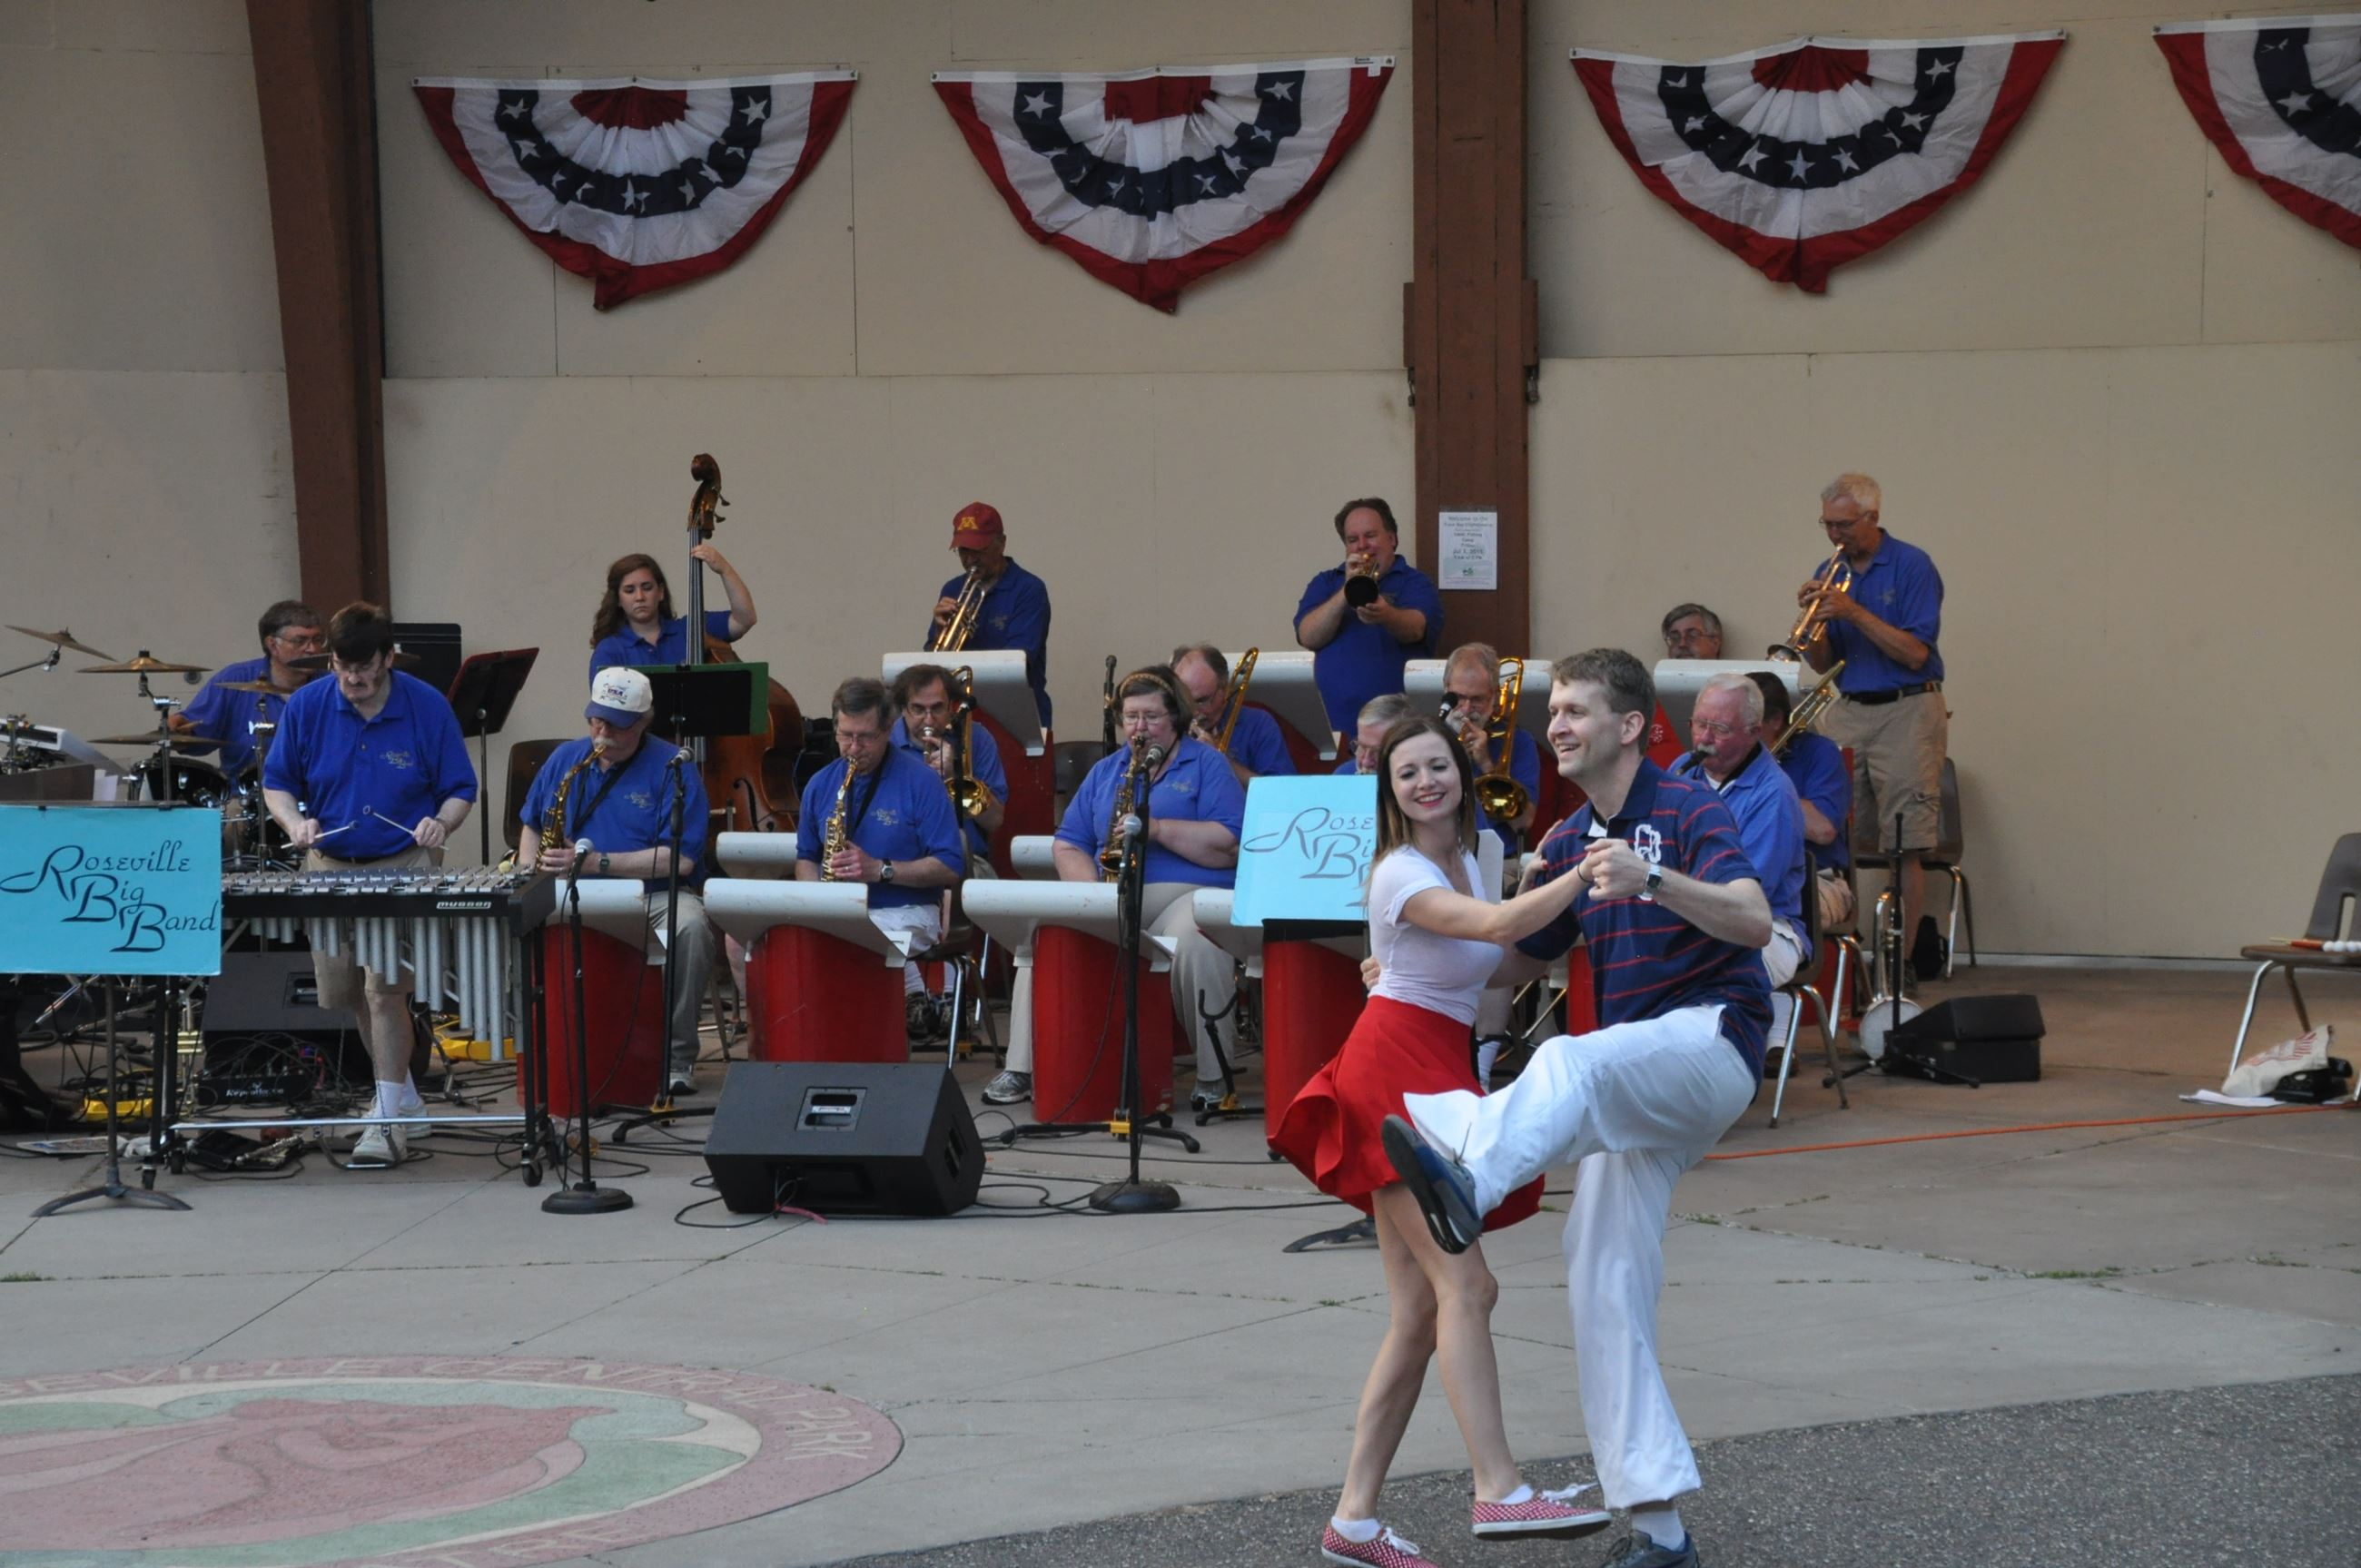 Roseville Big Band with dancers